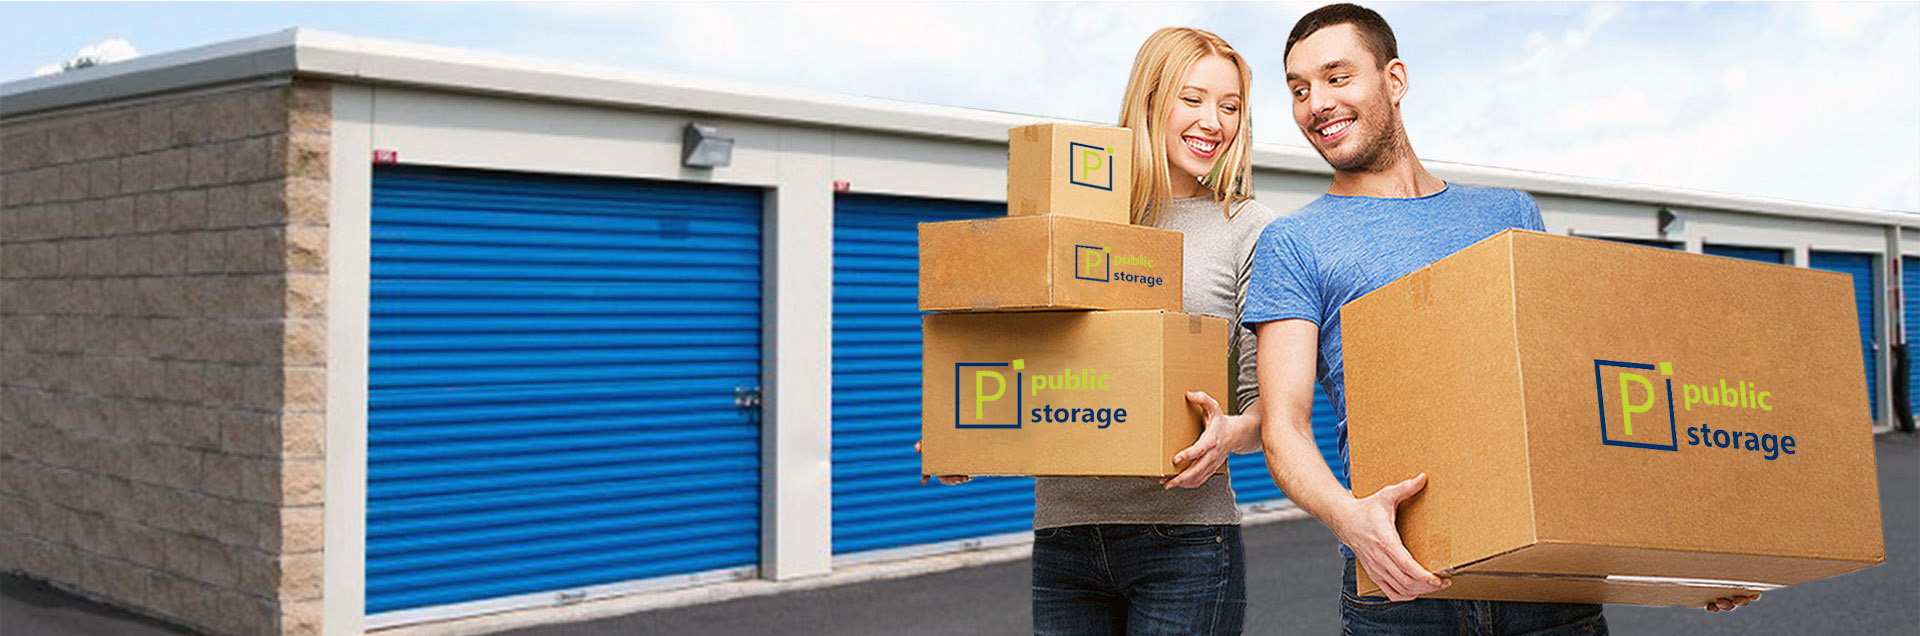 storage units dubai